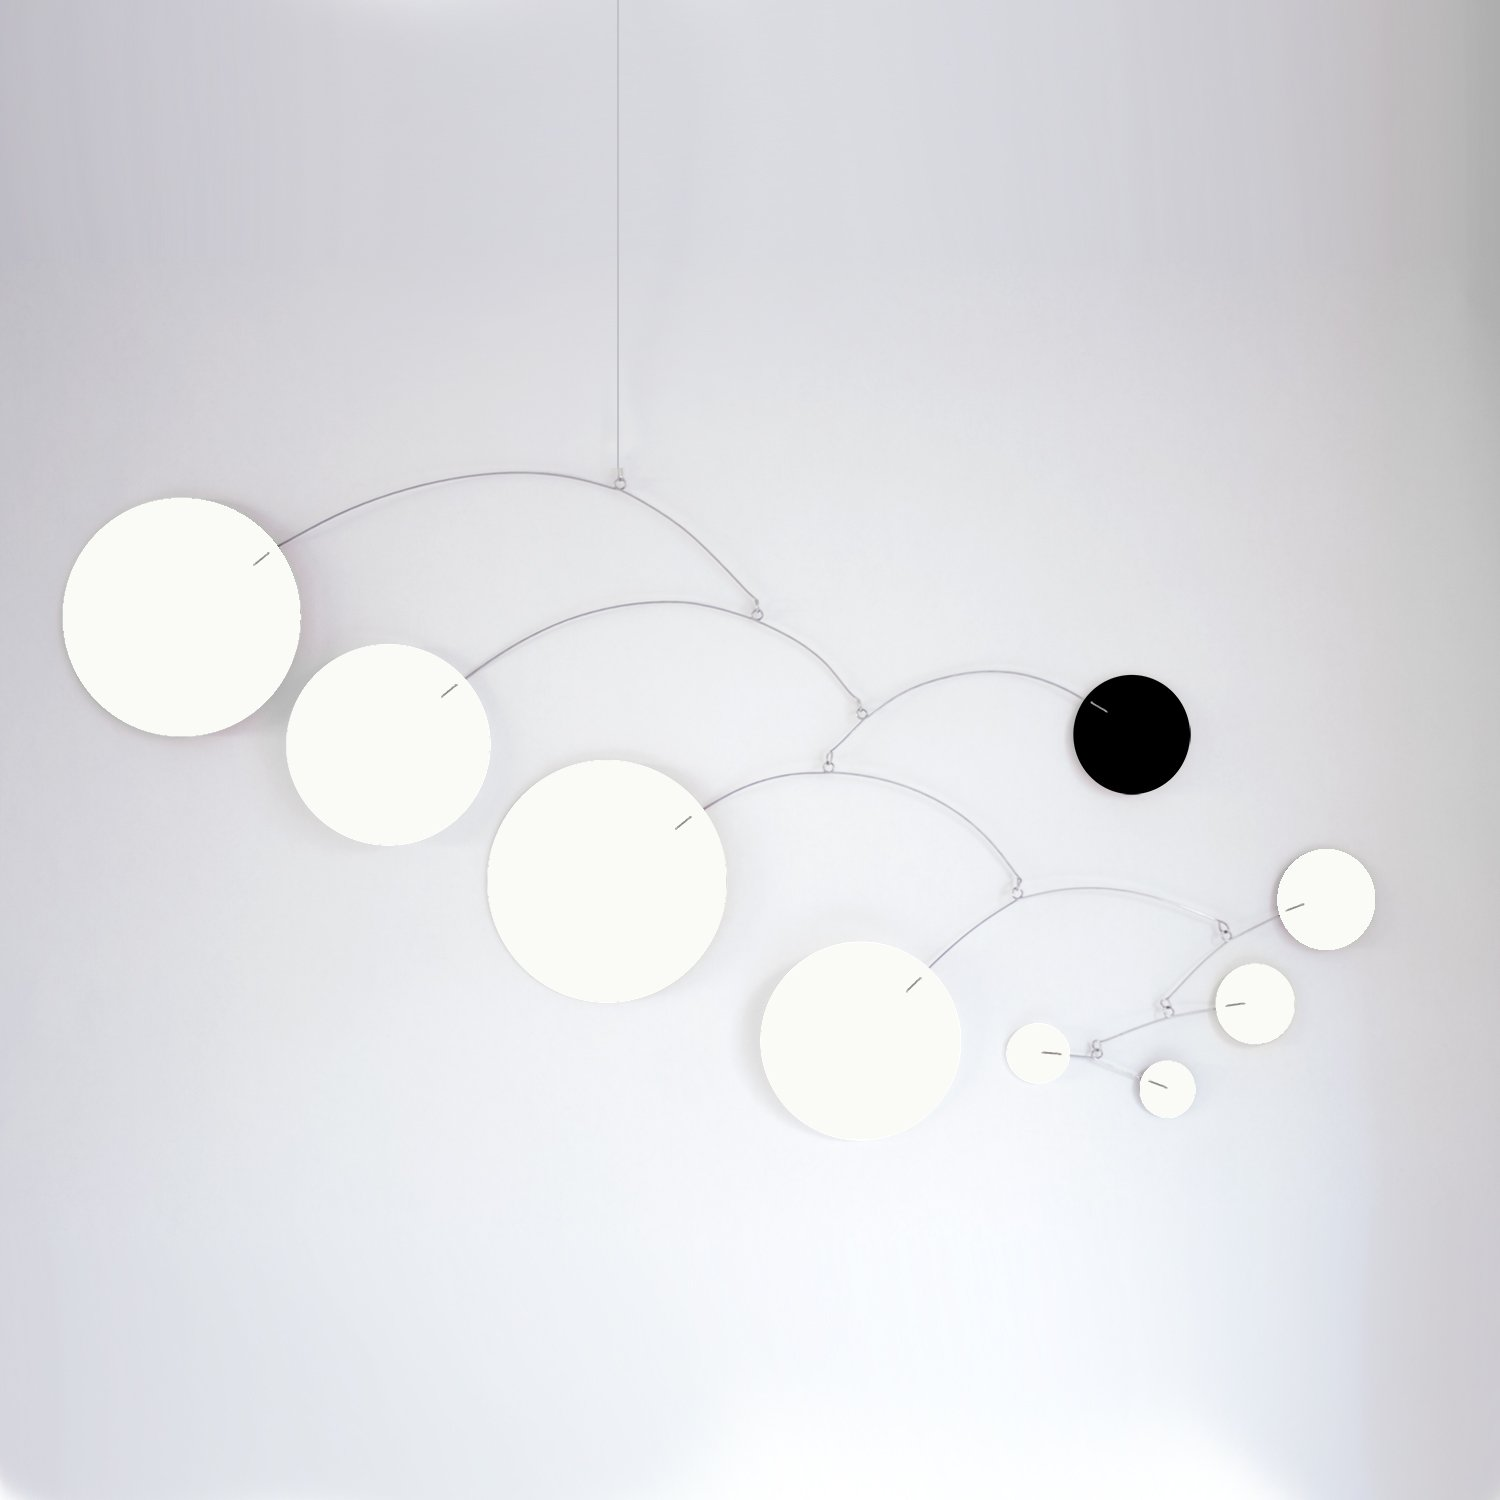 MOD Art White & Black Mobile - Choose From 3 Sizes - Calder Inspired Retro Modern Hanging Art